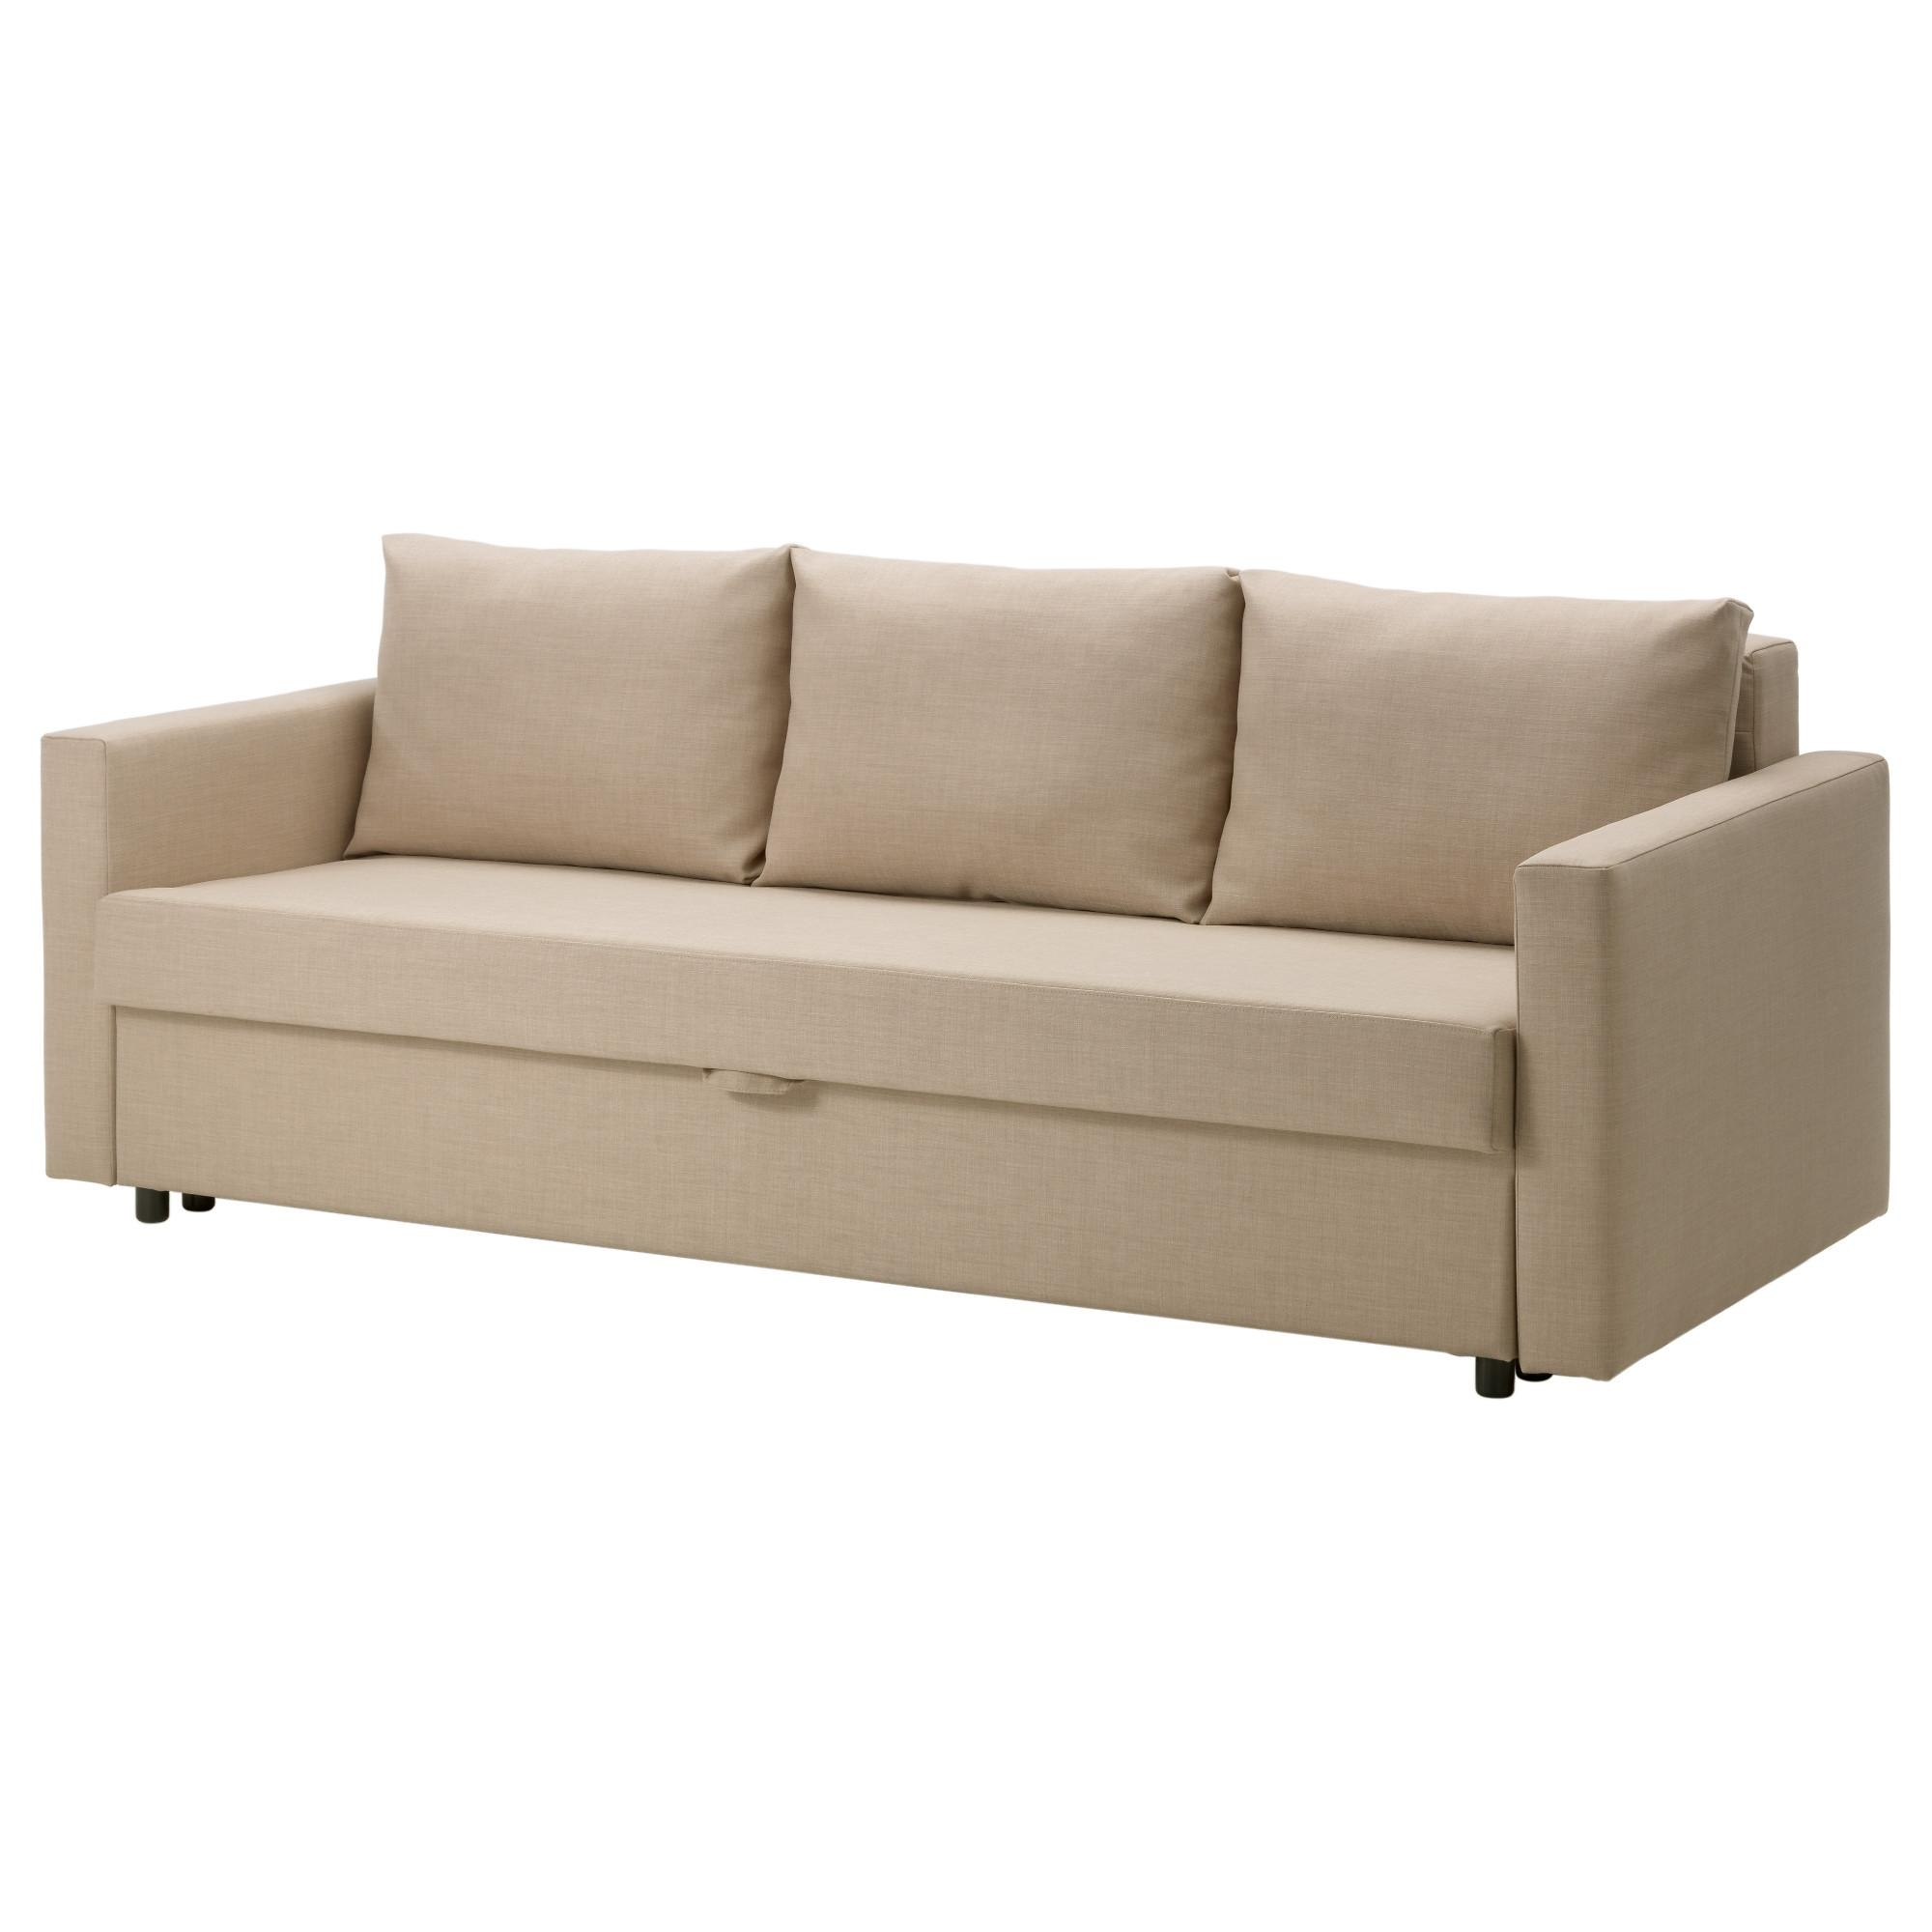 Ikea Sofas And Chairs: 20 Top Convertible Queen Sofas